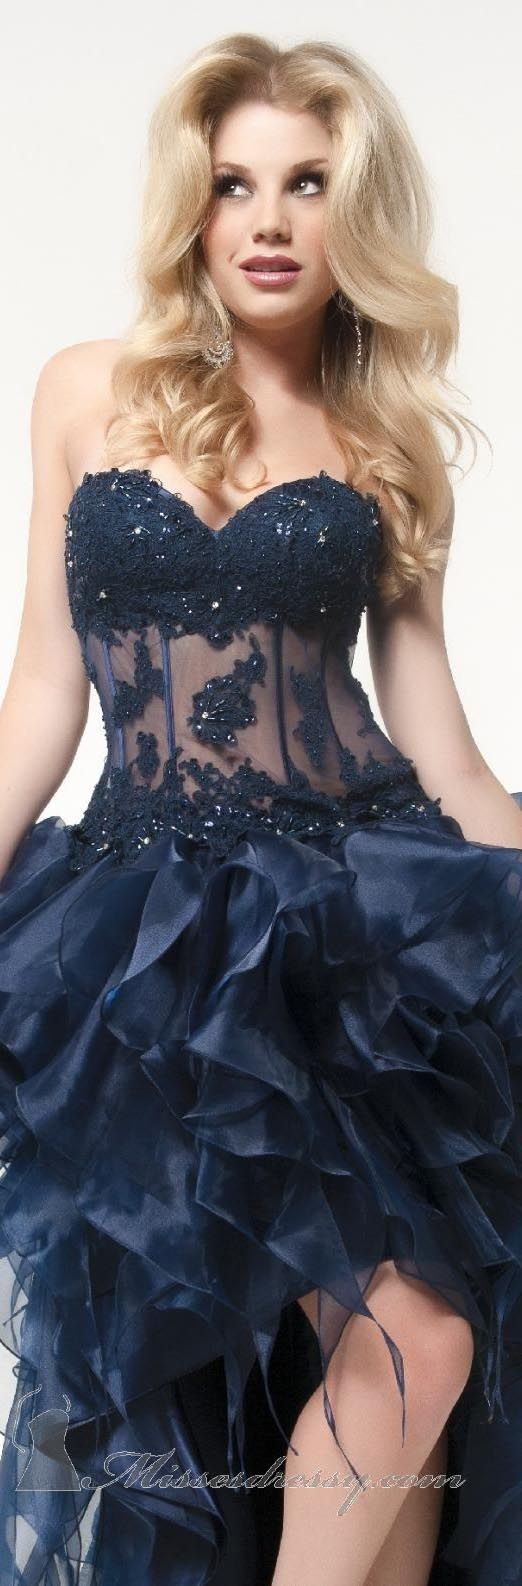 Strapless Sweetheart Gown by Jasz Couture